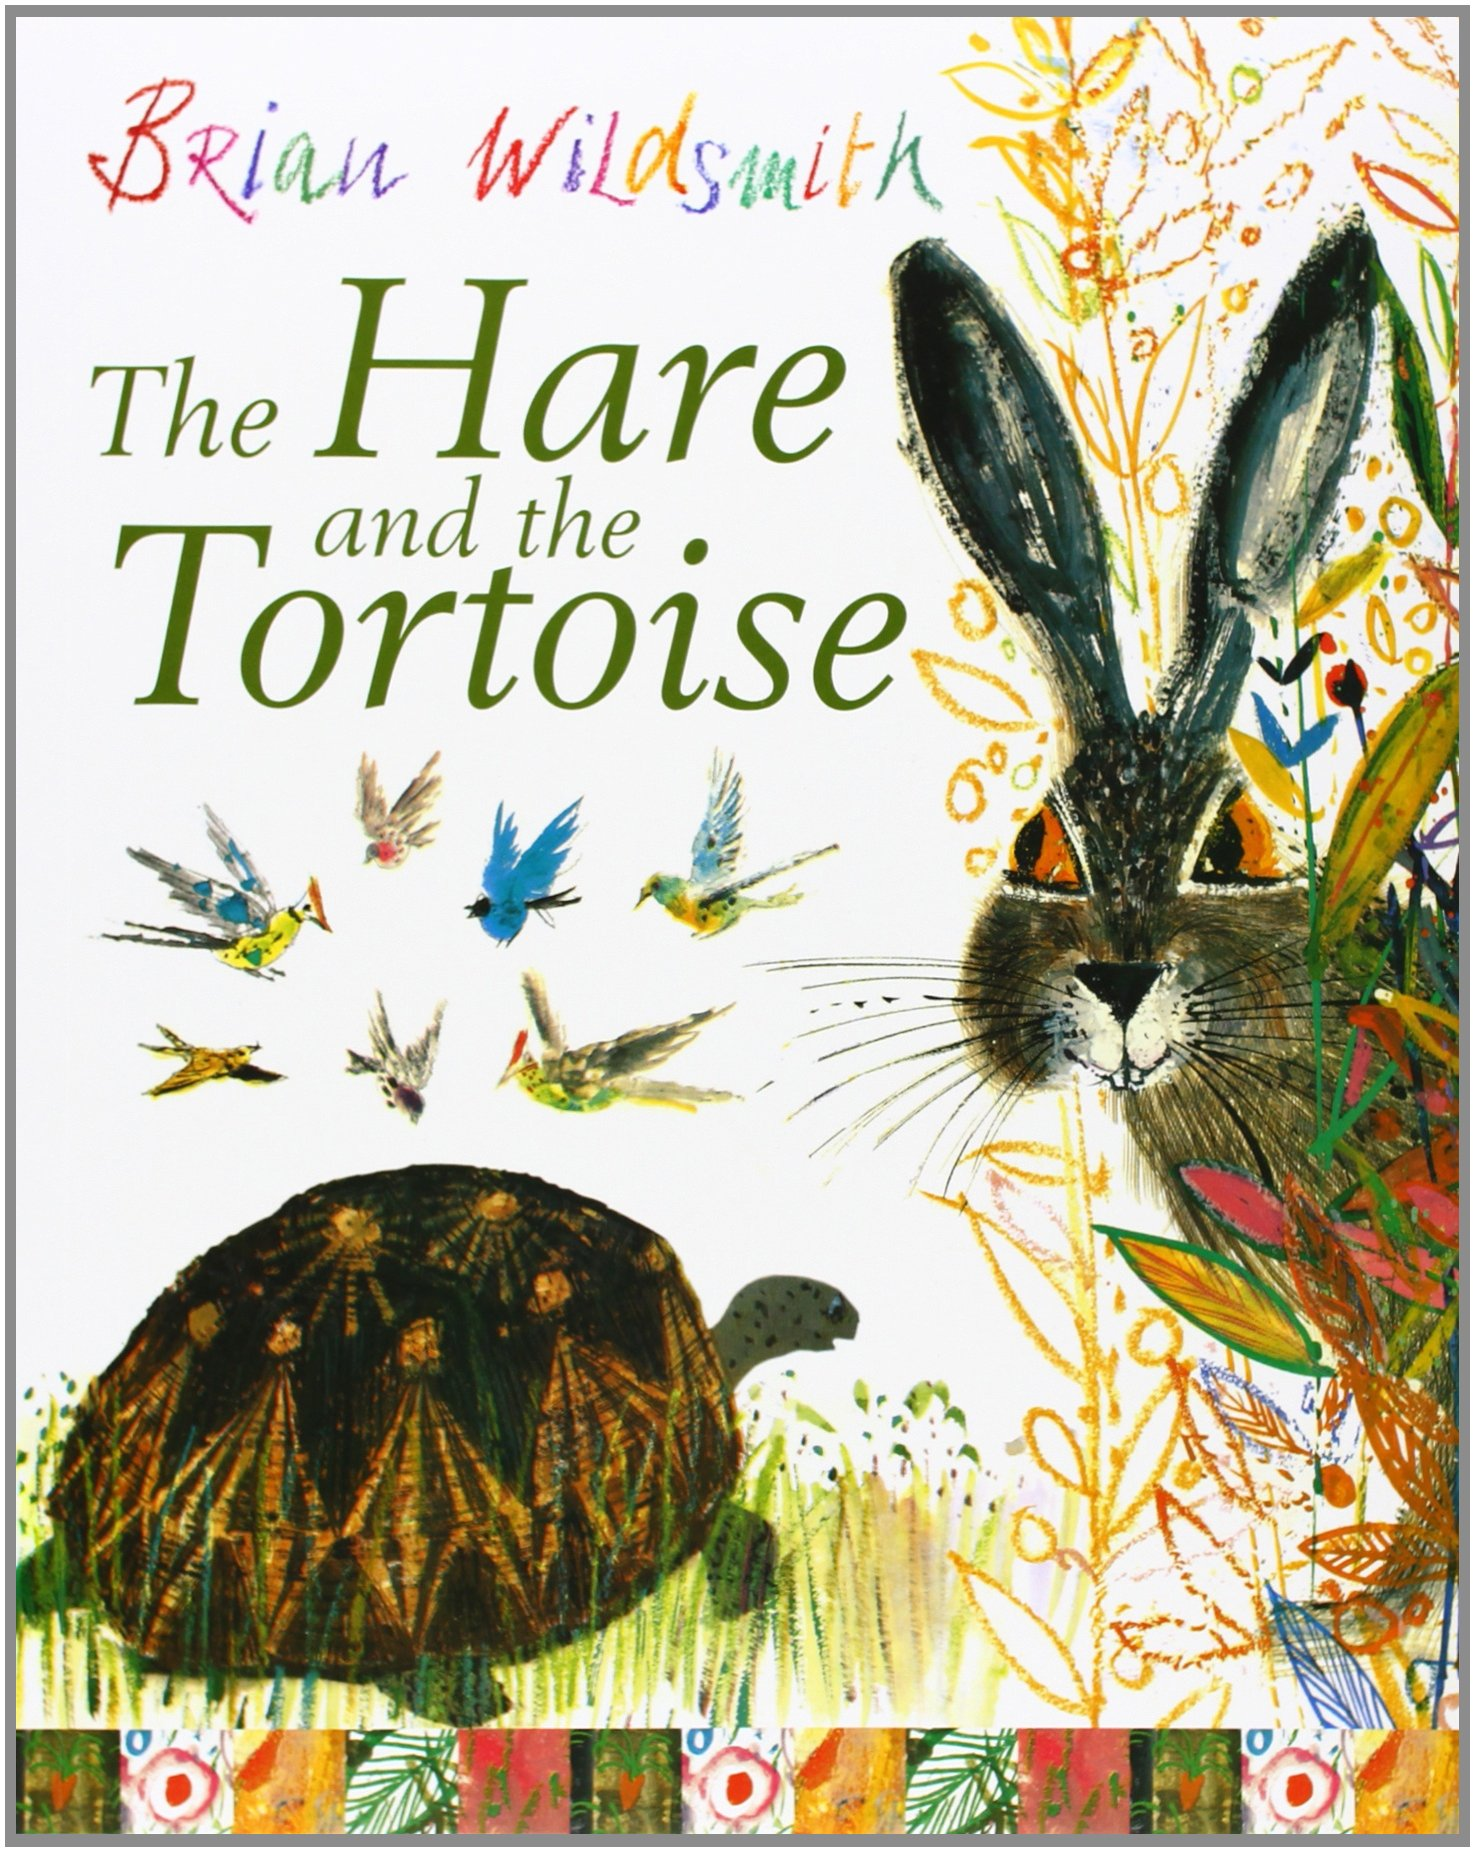 Hare book the the and tortoise